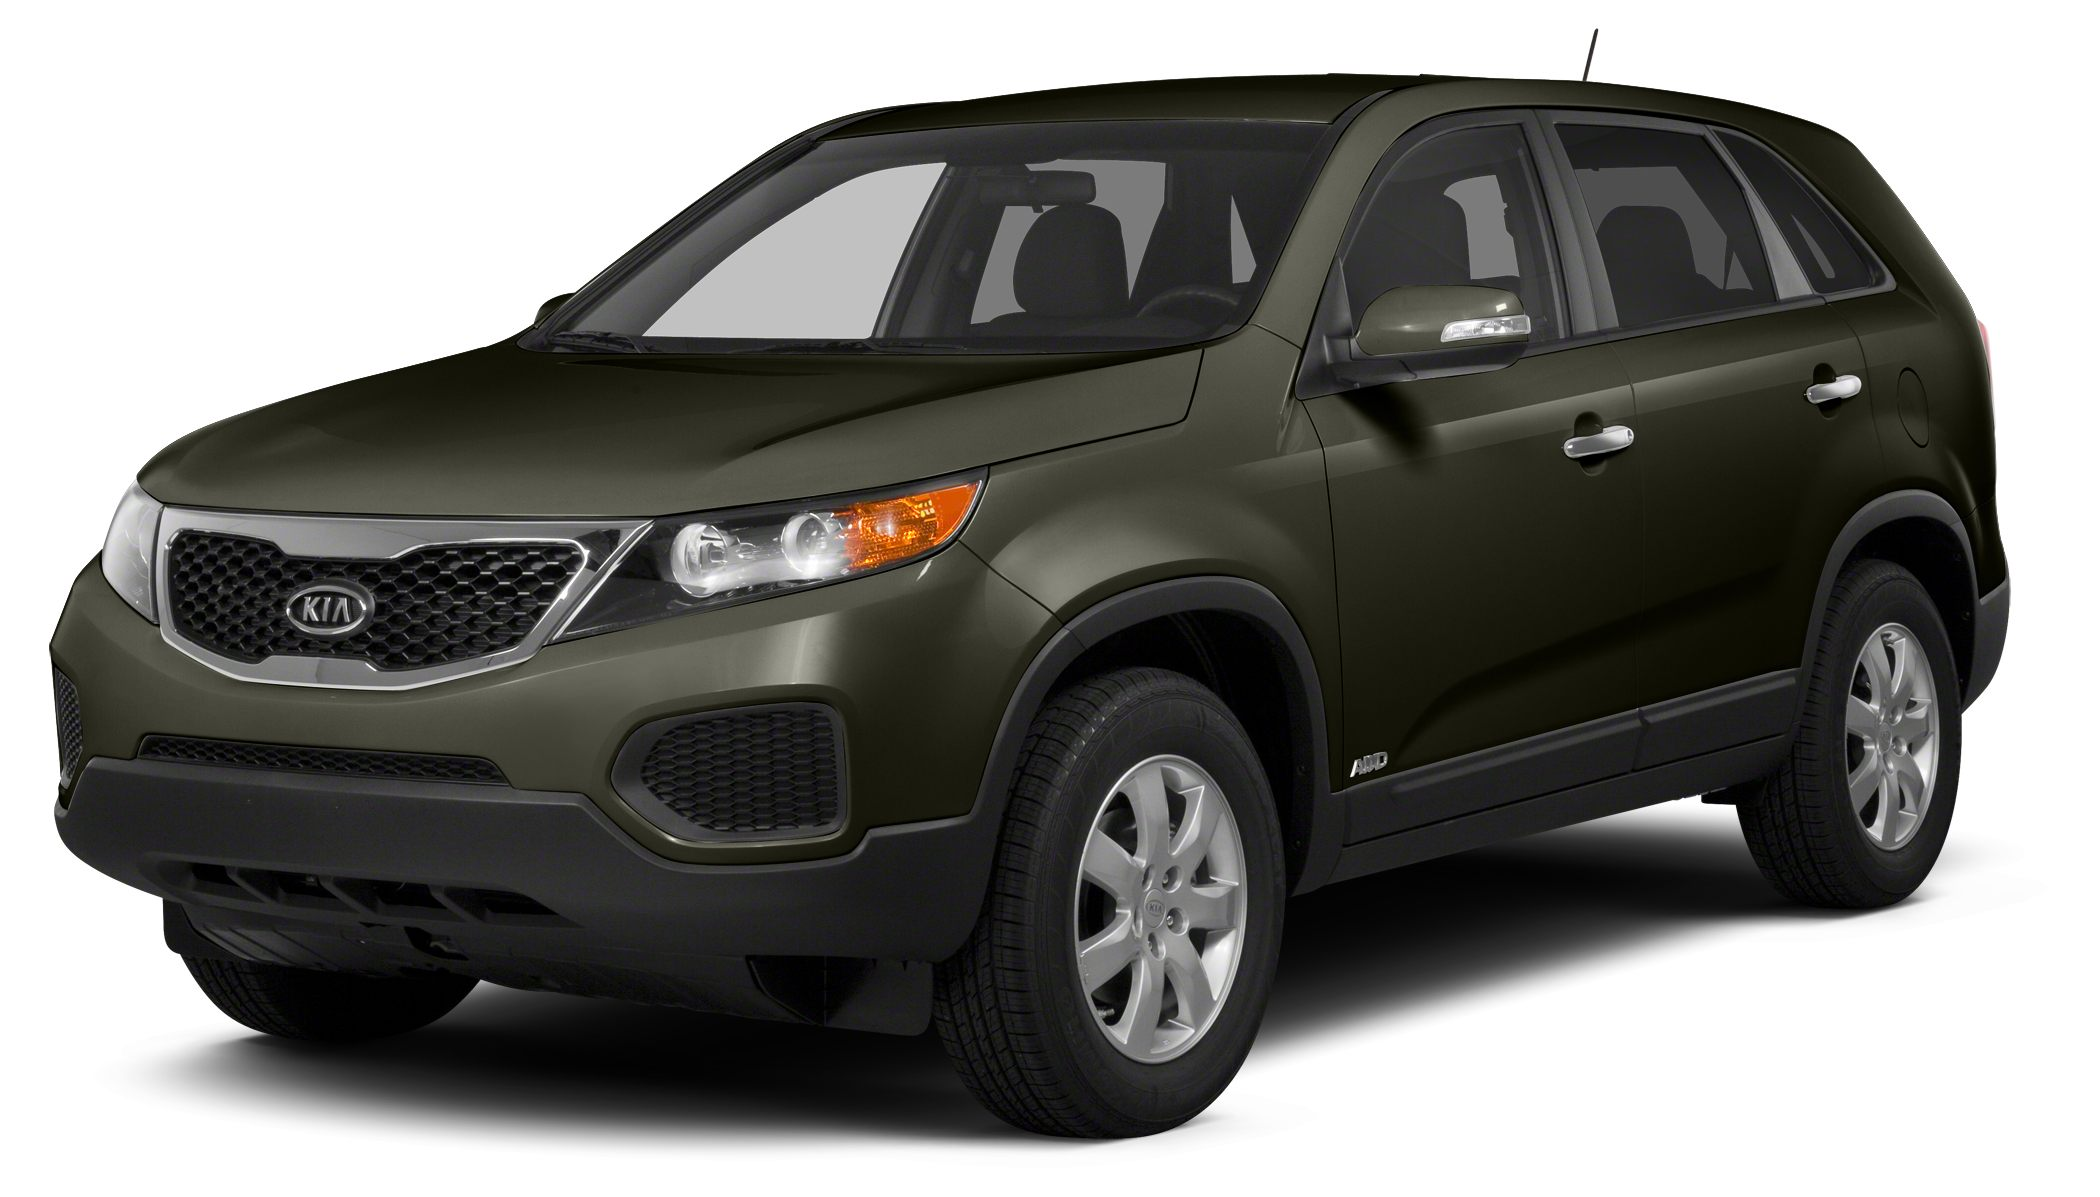 2013 Kia Sorento LX For Internet Pricing and InformationPlease call Teresa Brown  866-387-3798It